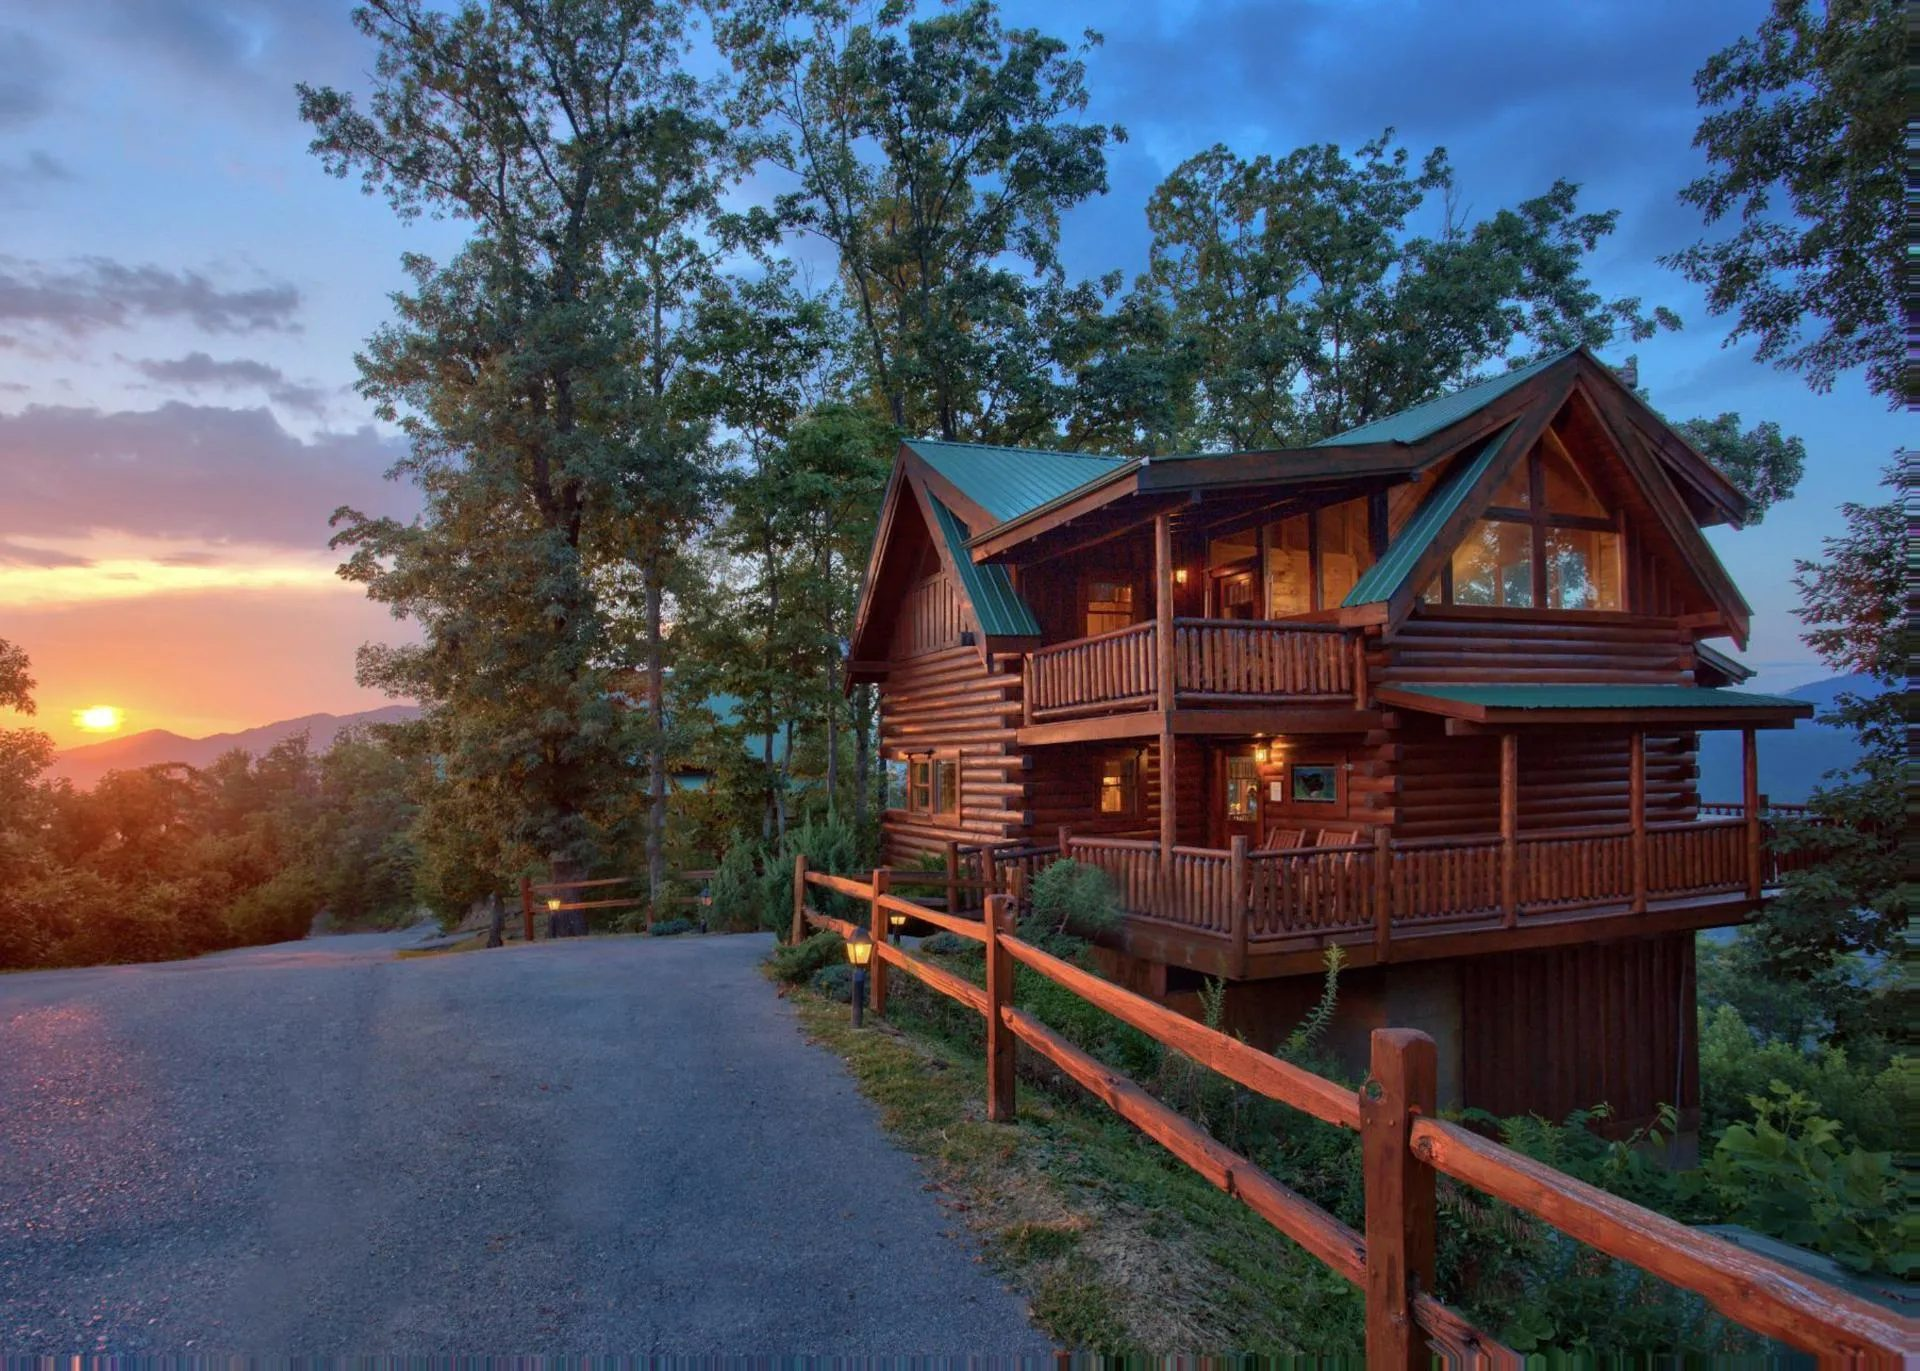 The 13 Best Cabin Rentals in the United States